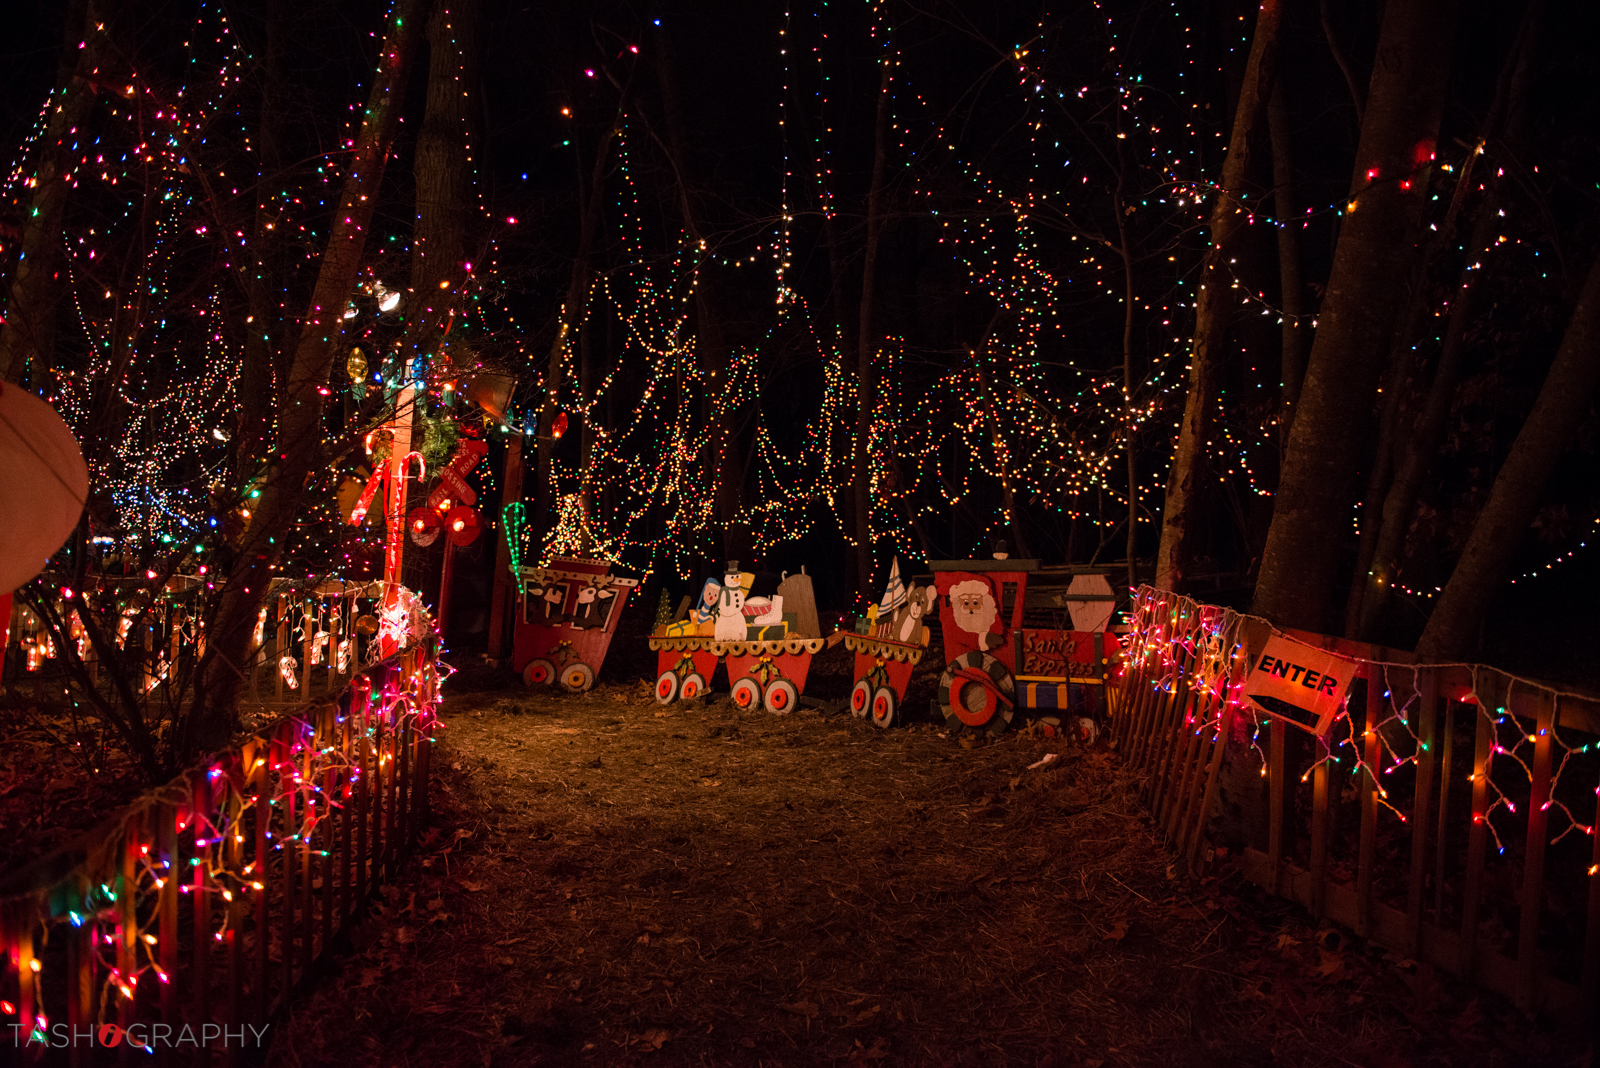 Here's the entrance of the Setti's beautiful Christmas display where you feel like you're actually entering theNorth Pole!